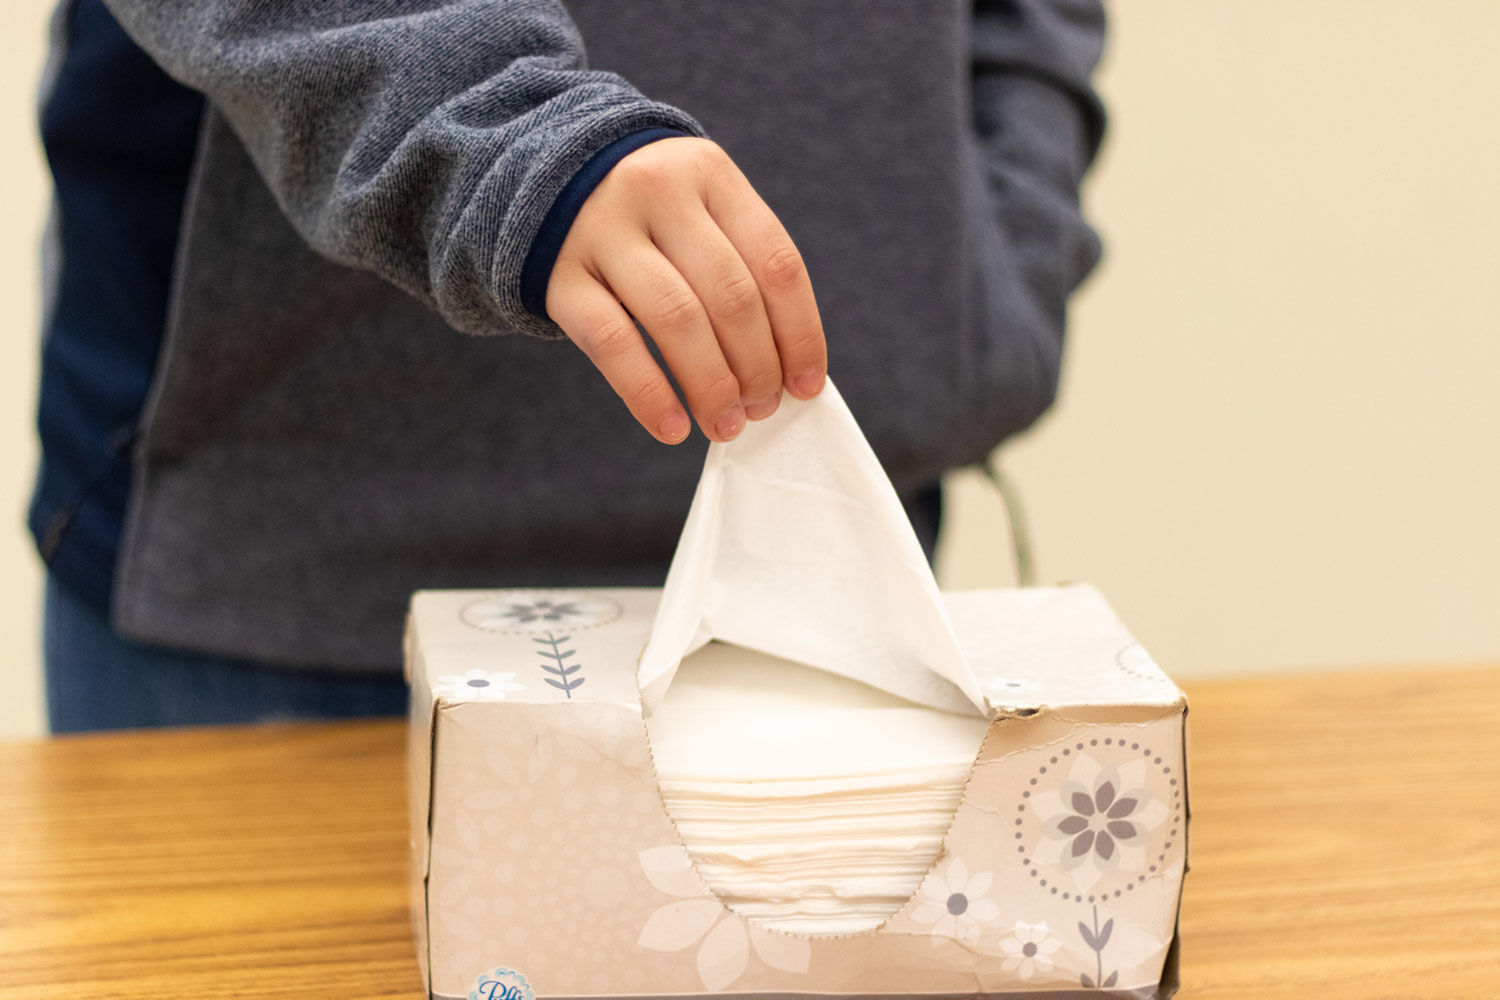 A student grabs a Kleenex after sneezing during the flu season. The recent flu outbreak has caused some schools to close for a few days at a time.